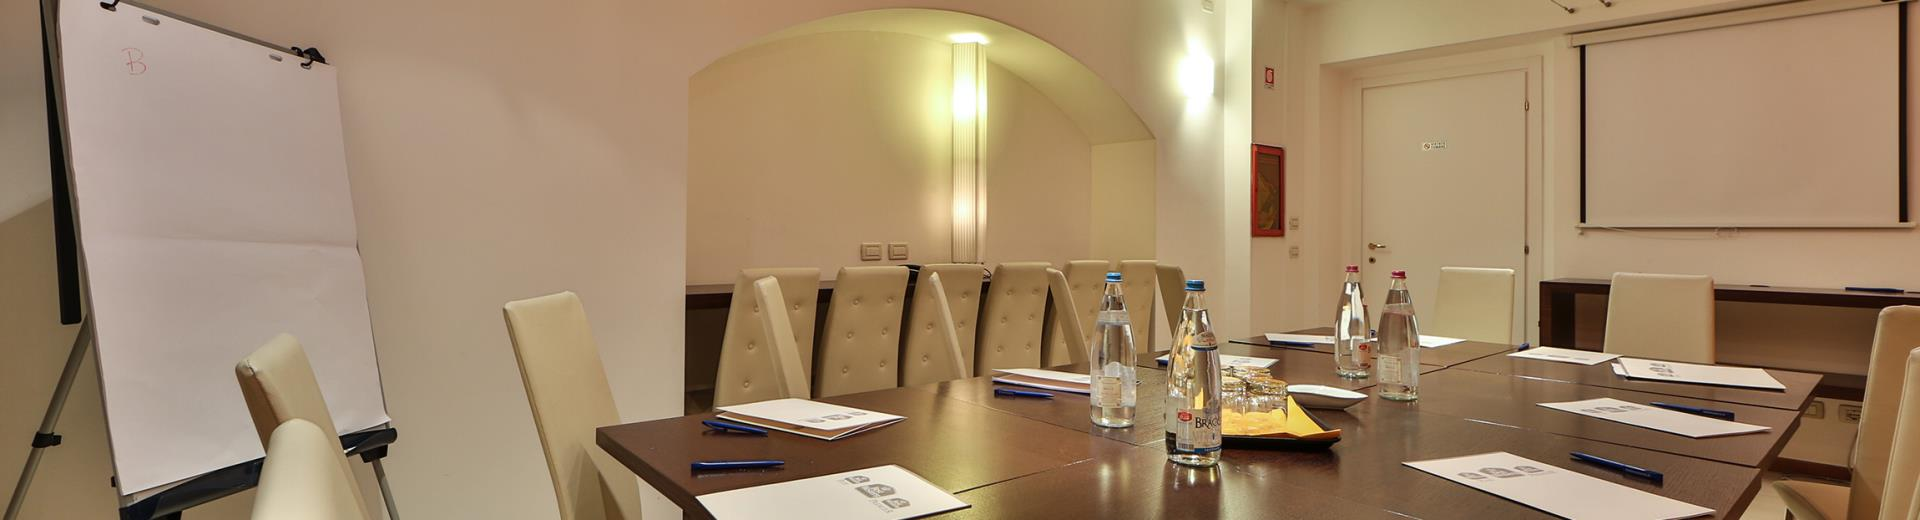 Plan your meeting in Bergamo with Best Western Hotel Piemontese, 4 star hotel in a central location.